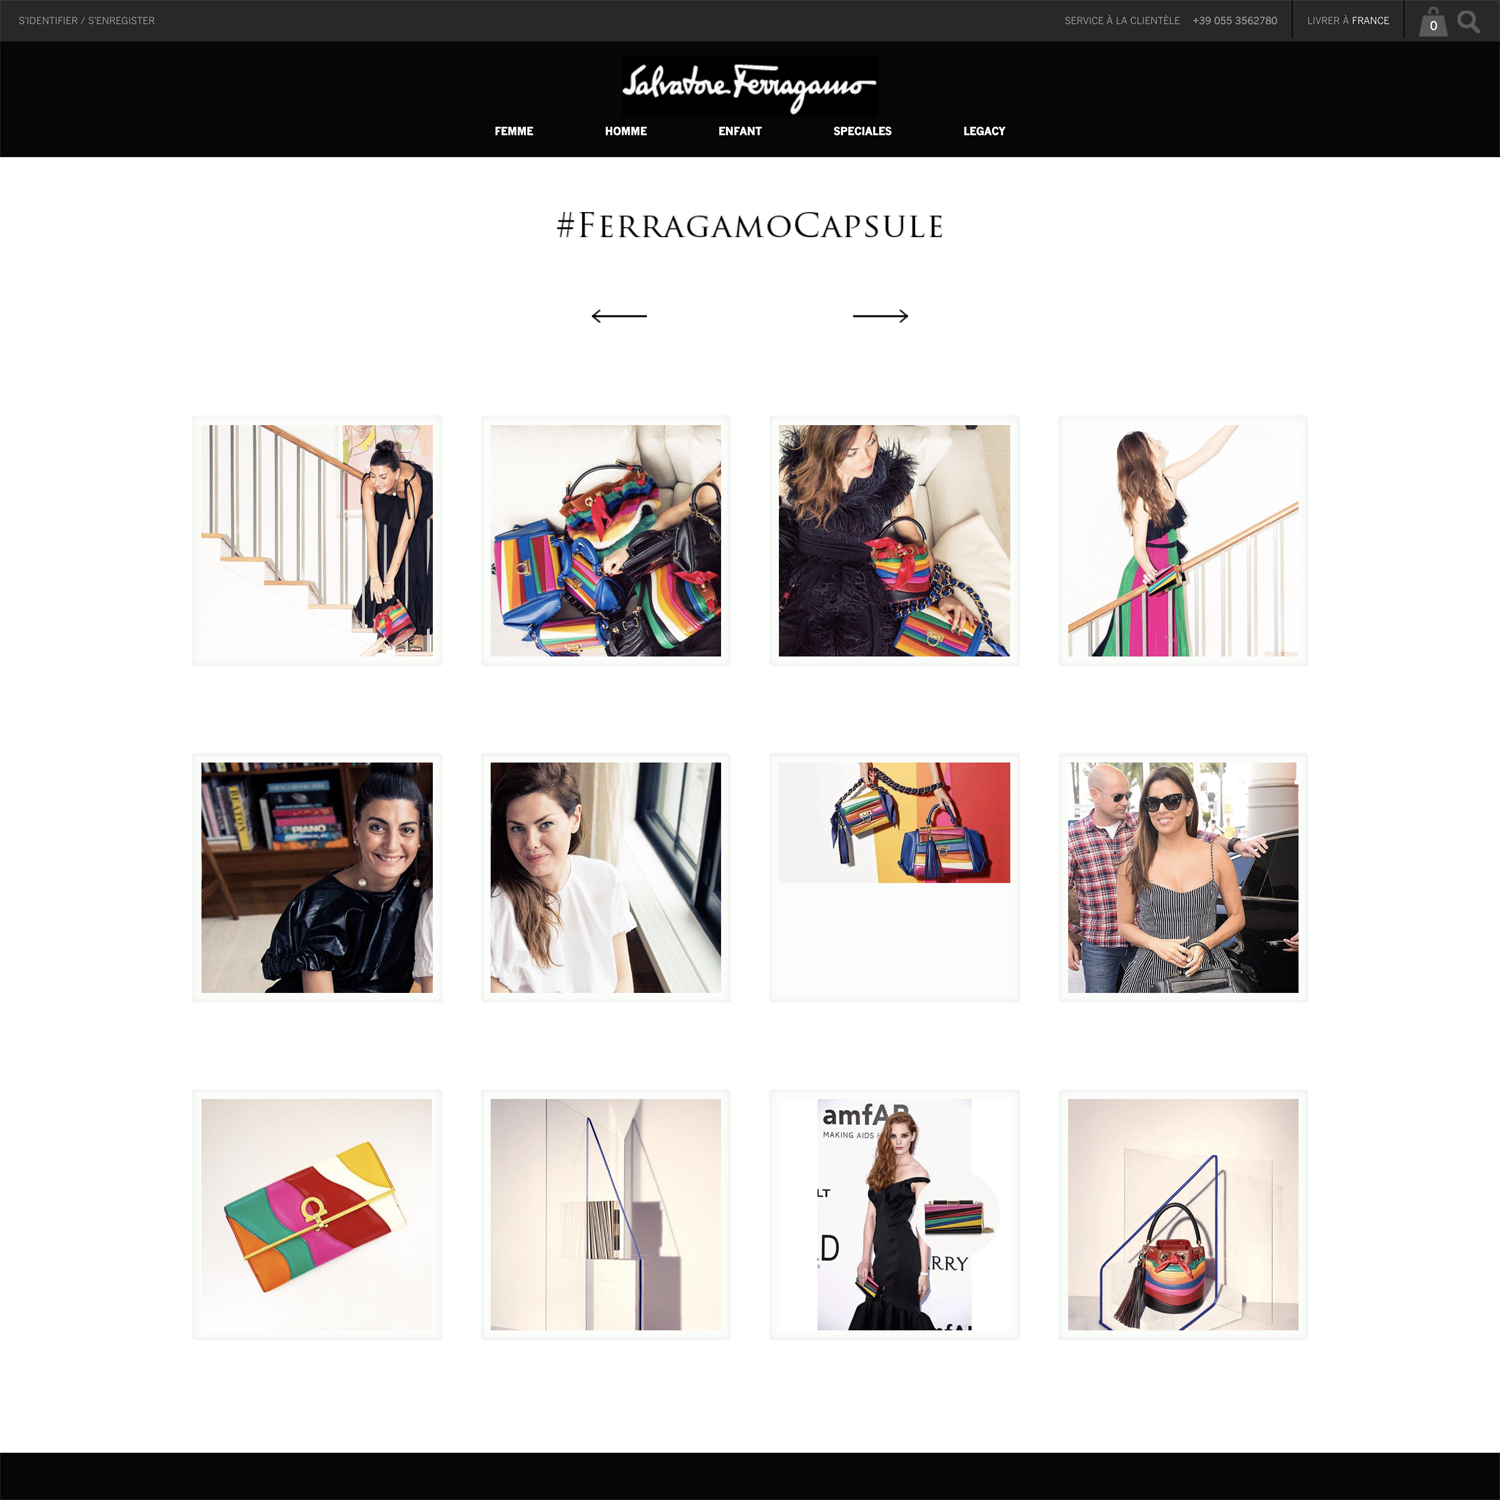 Social wall for product launch od Salavatore Ferragamo.